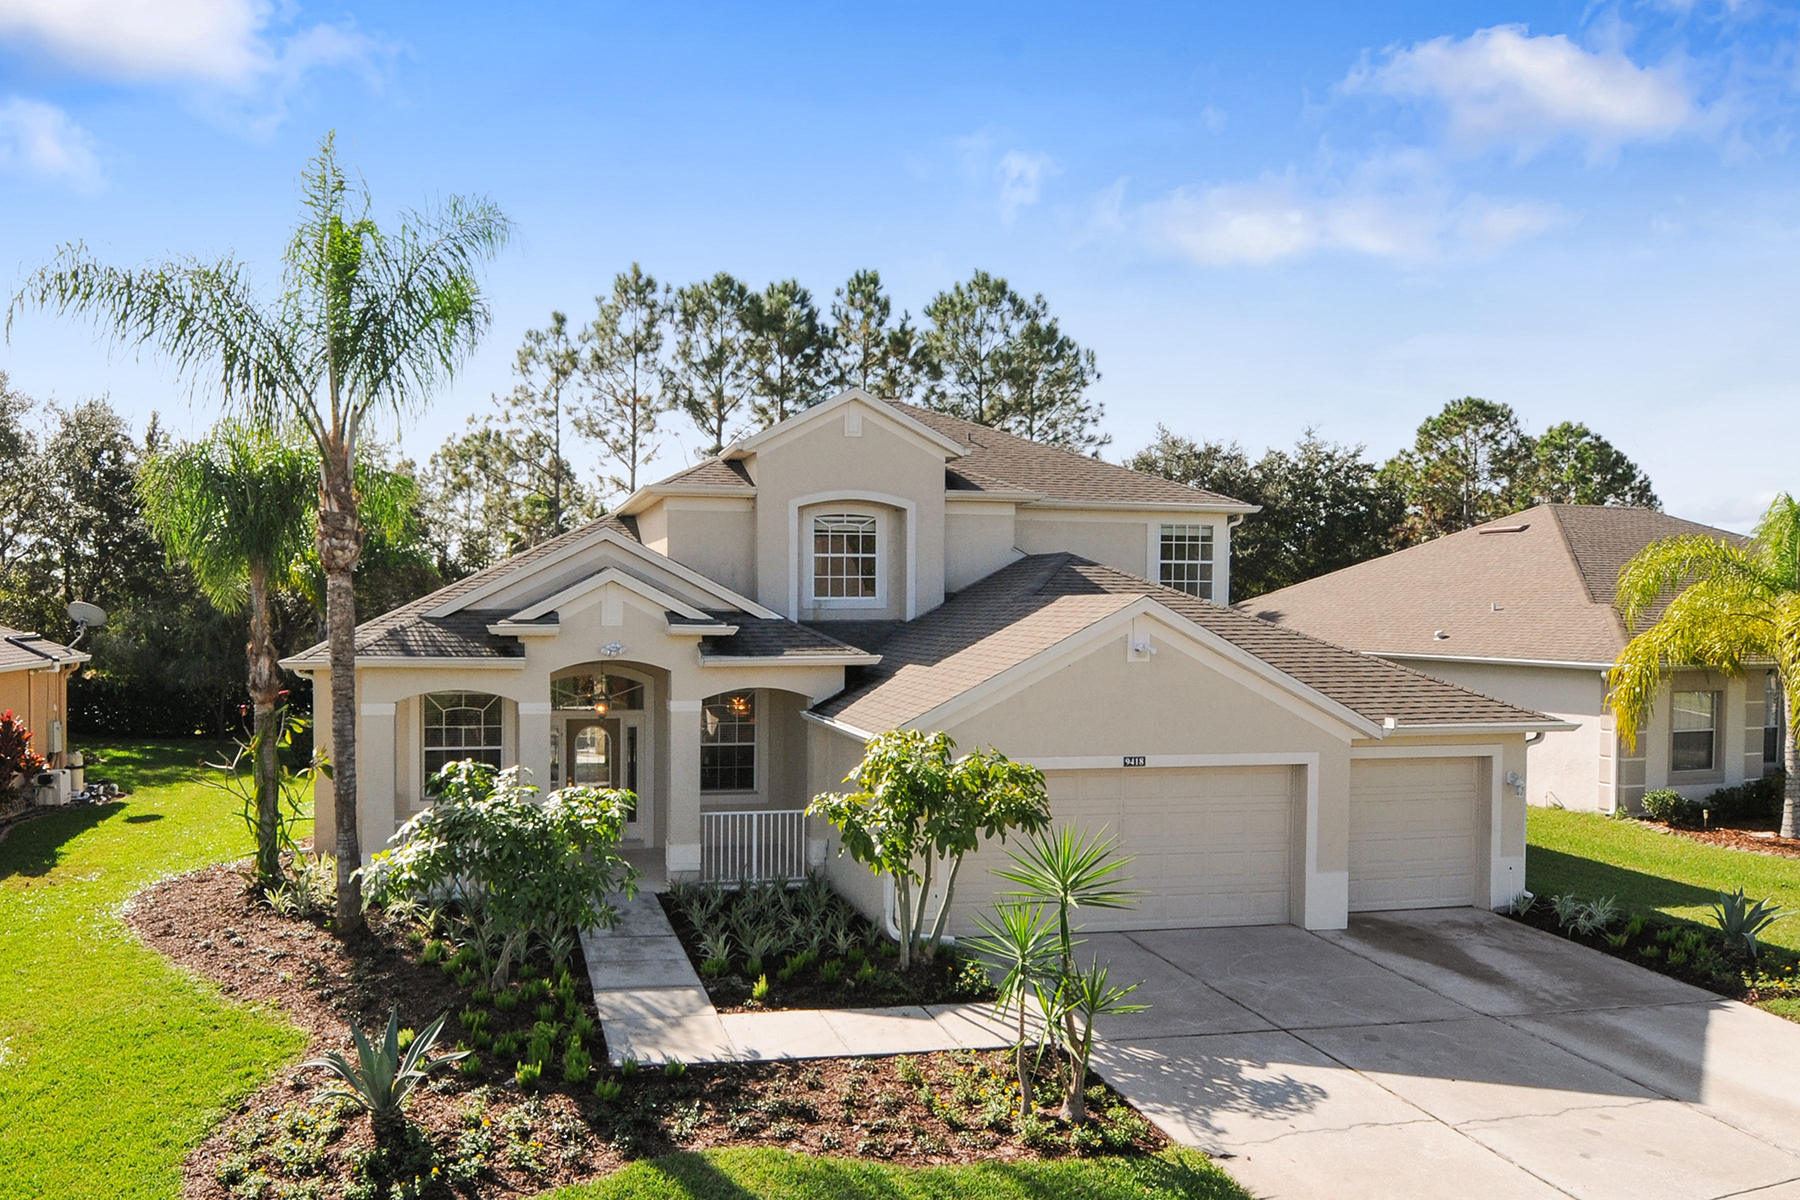 Single Family Home for Sale at ORLANDO 9418 Ashmore Ln Orlando, Florida, 32825 United States